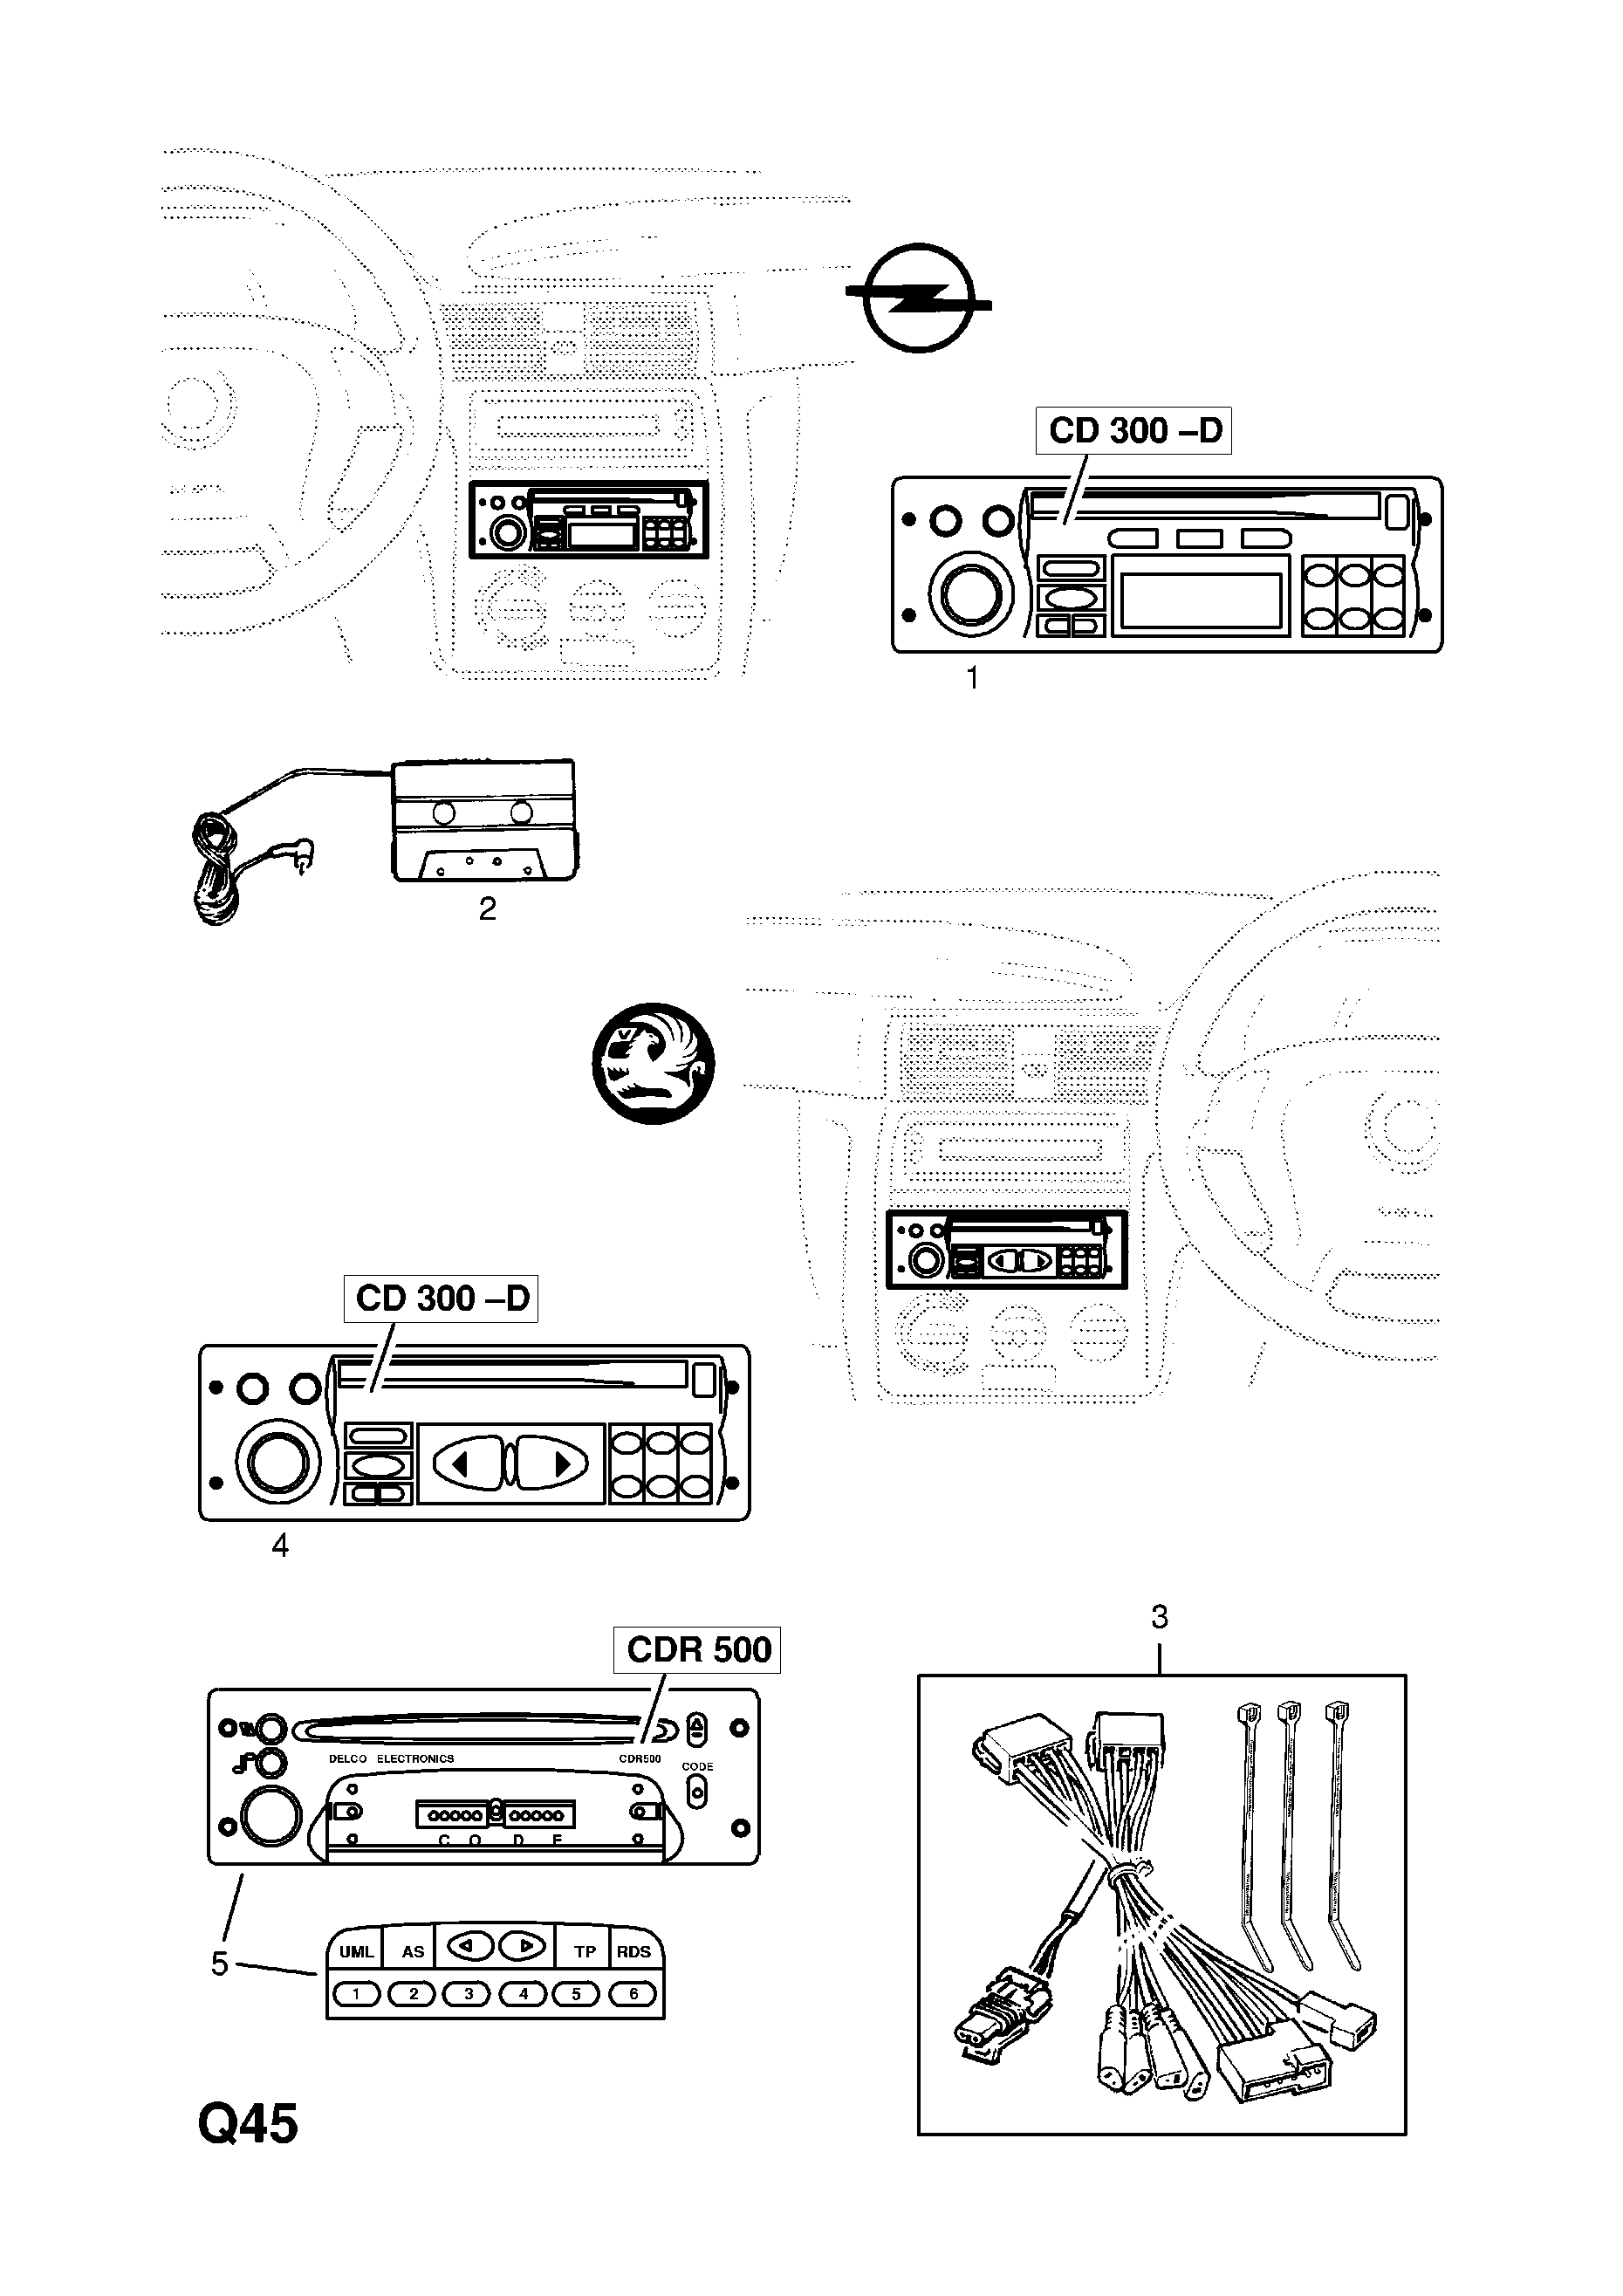 Vauxhall Cdr 500 Wiring Diagram Library For Opel Astra Compact Disc Radio F